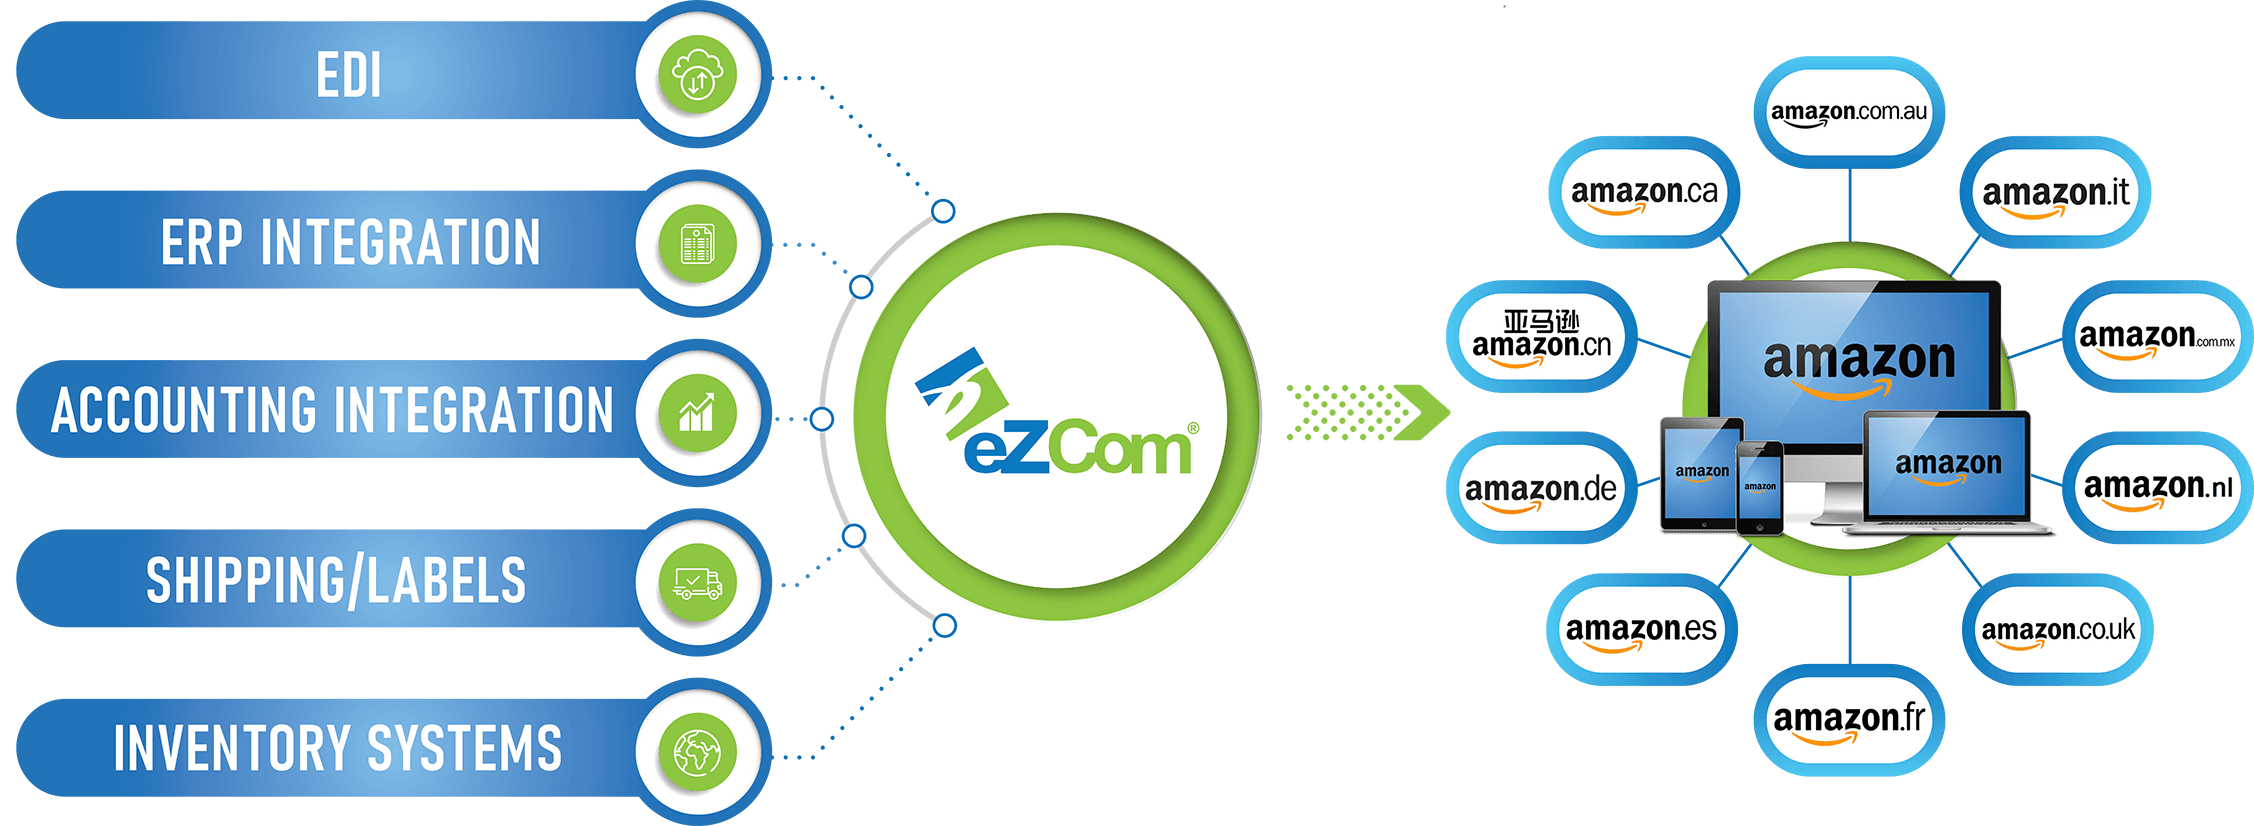 eZCom connecting to Amazons from around the world